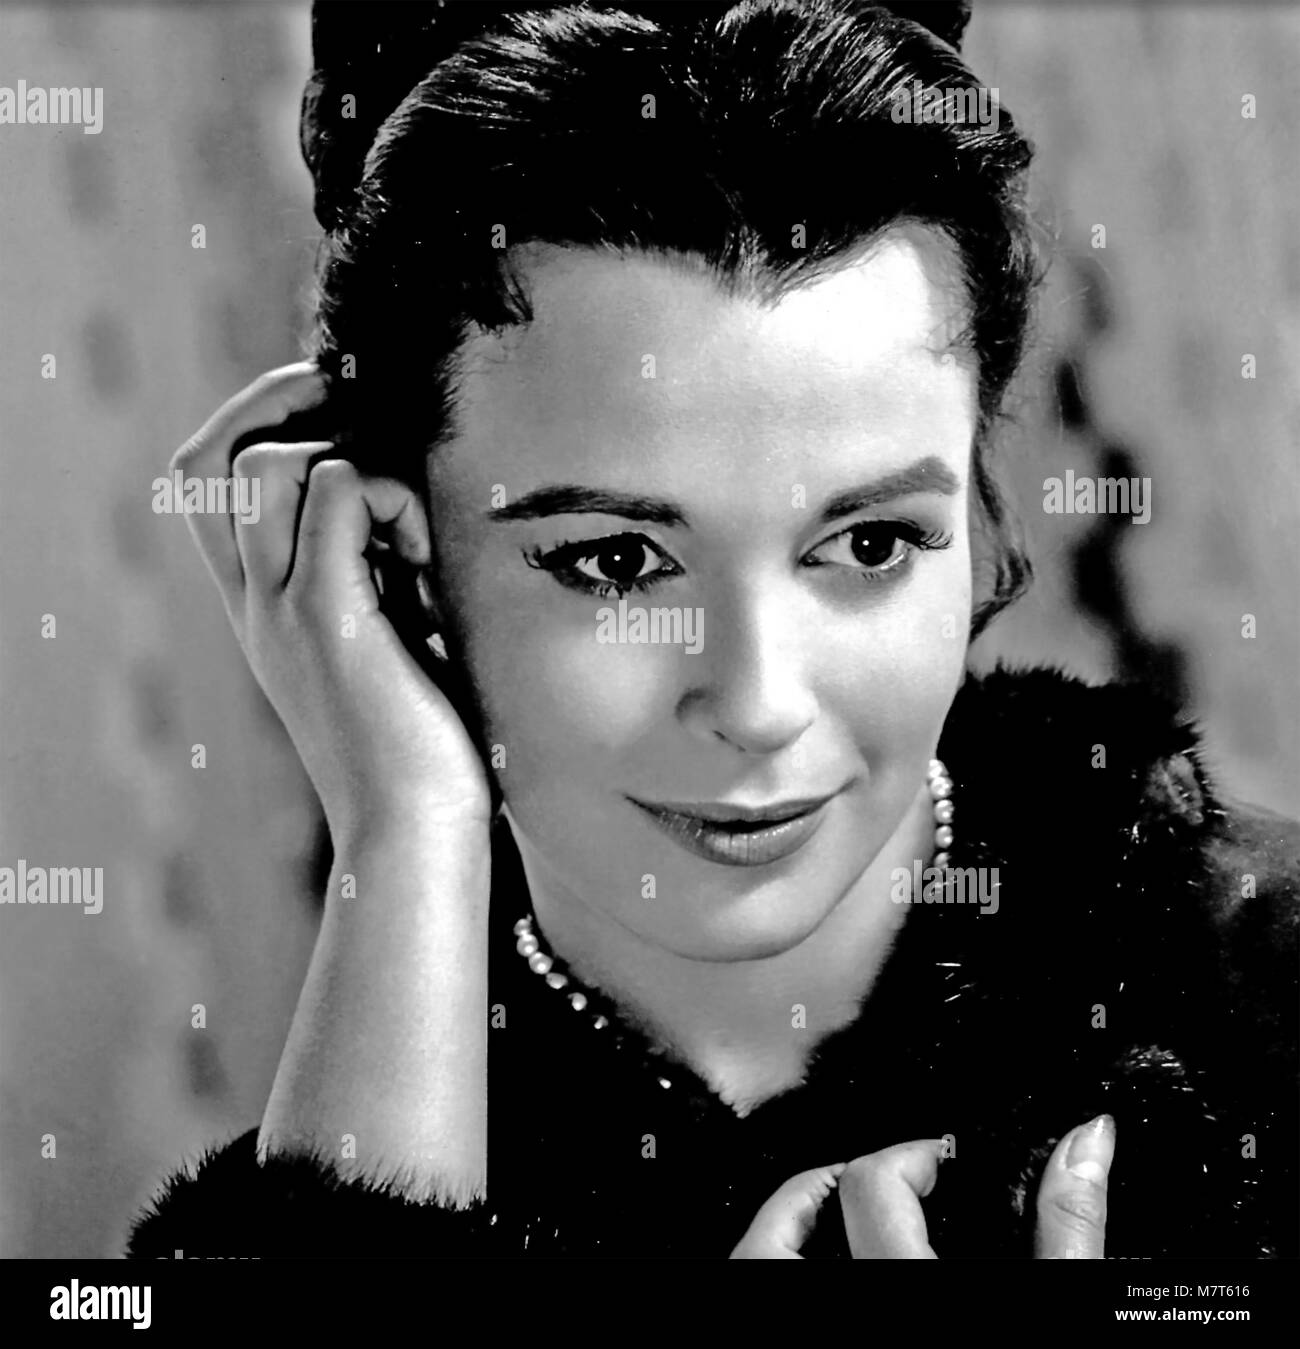 THE BROTHERS KARAMAZOV 1958 MGM film with Claire Bloom as Katya - Stock Image